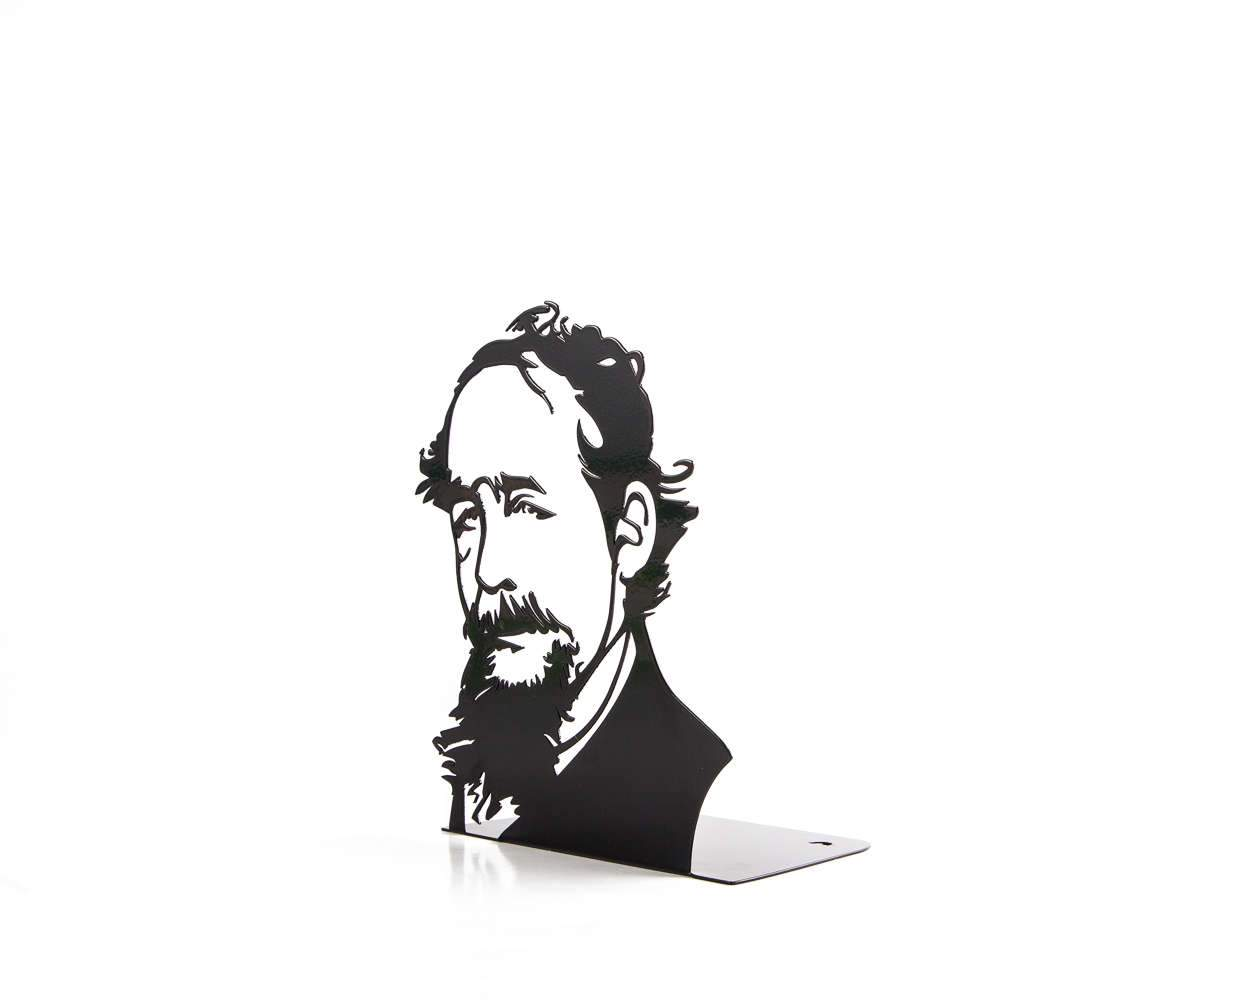 One Decorative bookend Charles Dickens // modern functional decor for the smartest books // FREE SHIPPING // perfect housewarming gift - Design Atelier Article